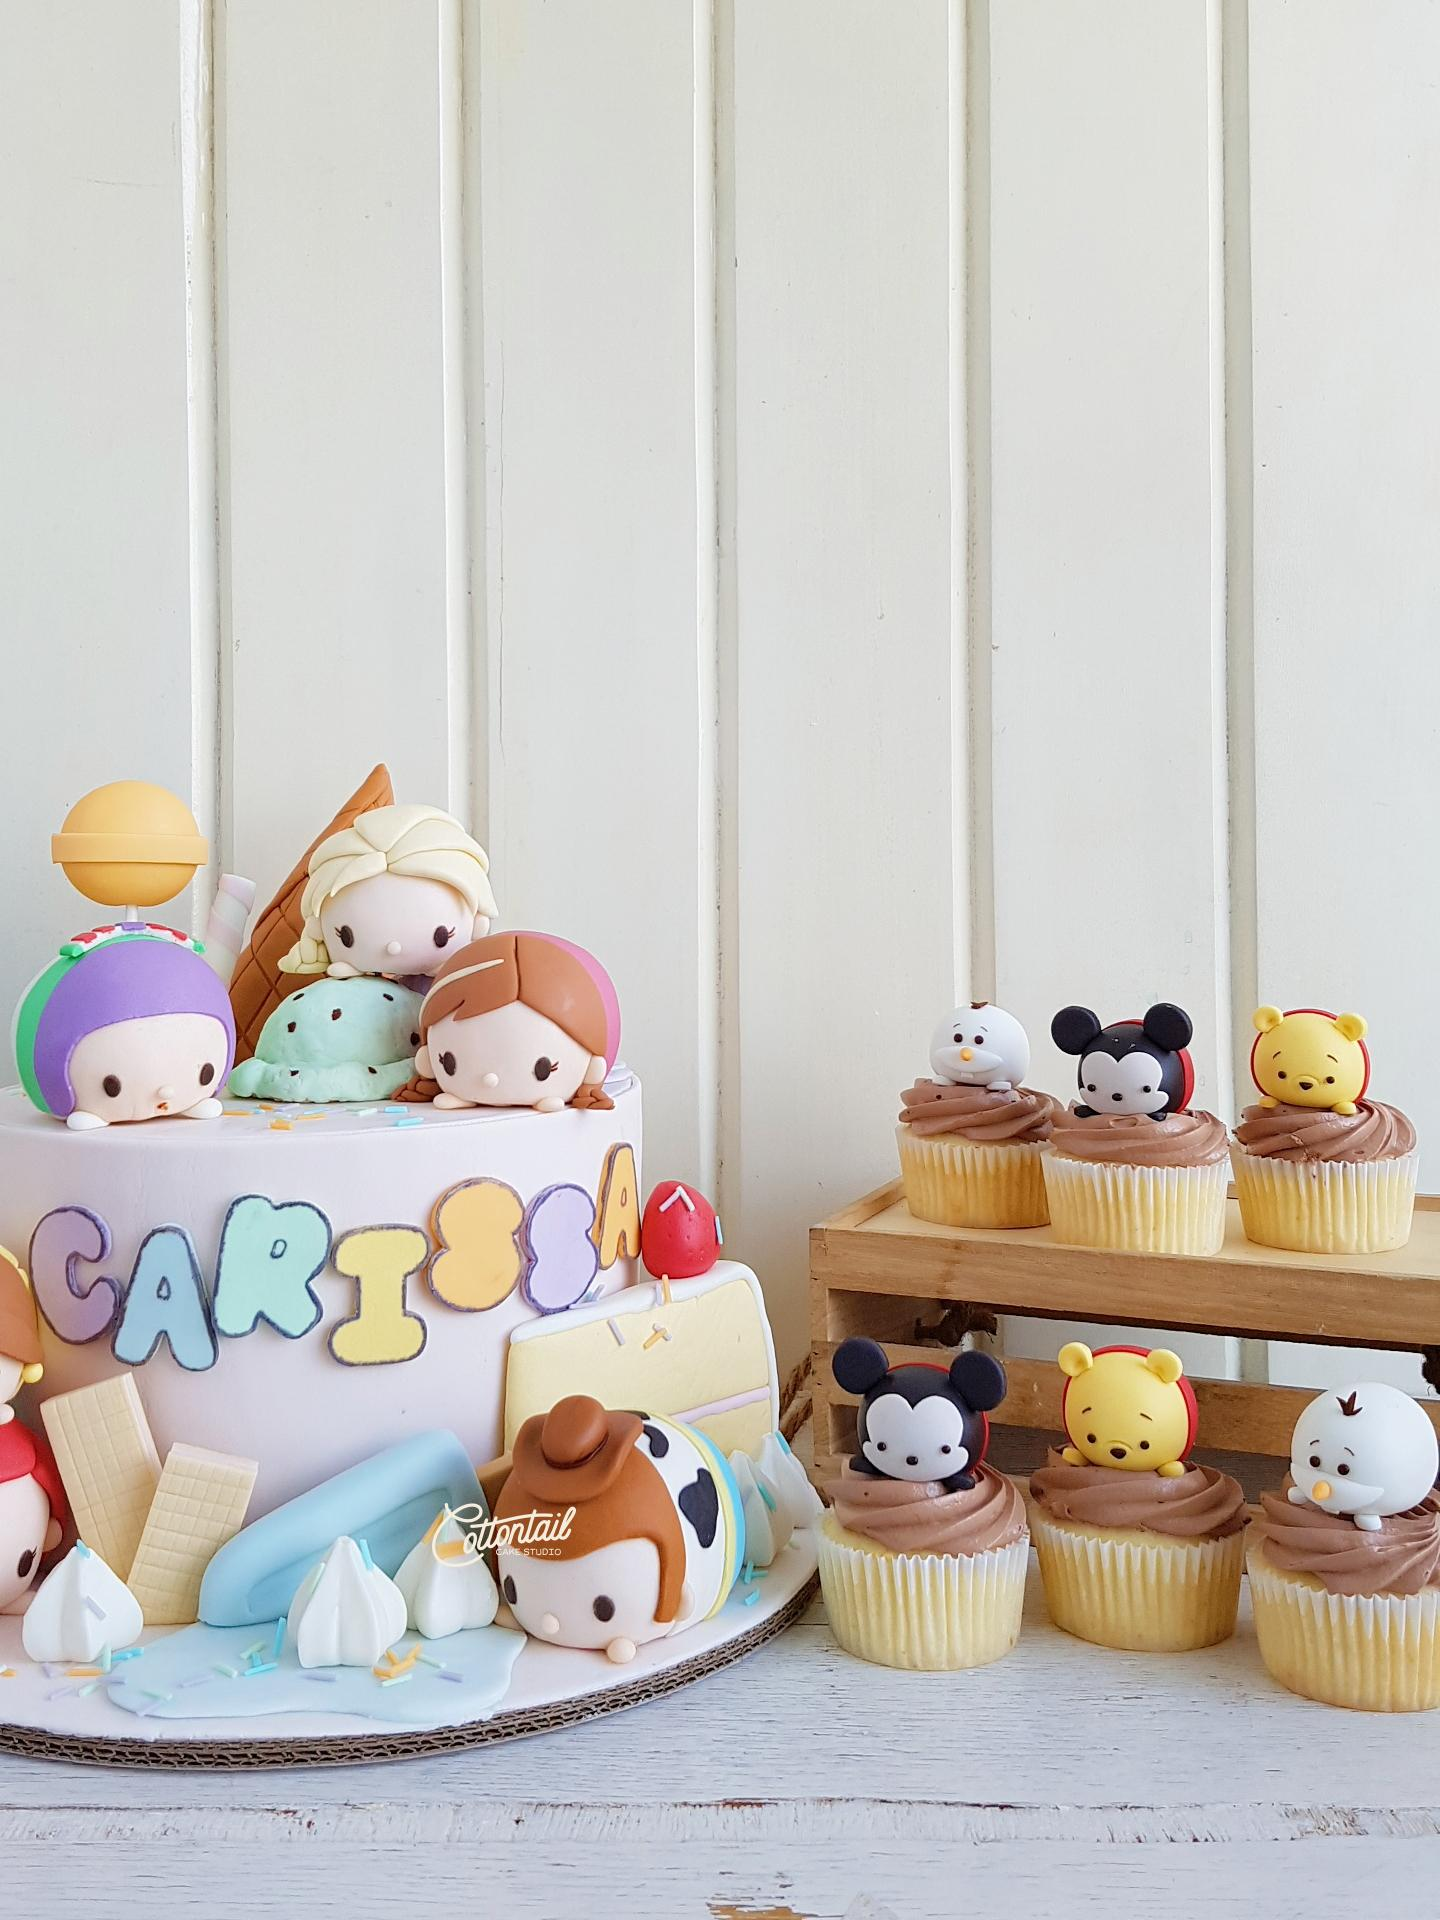 Cake Artist Studio : Cottontail Cake Studio Sugar Art & Pastries